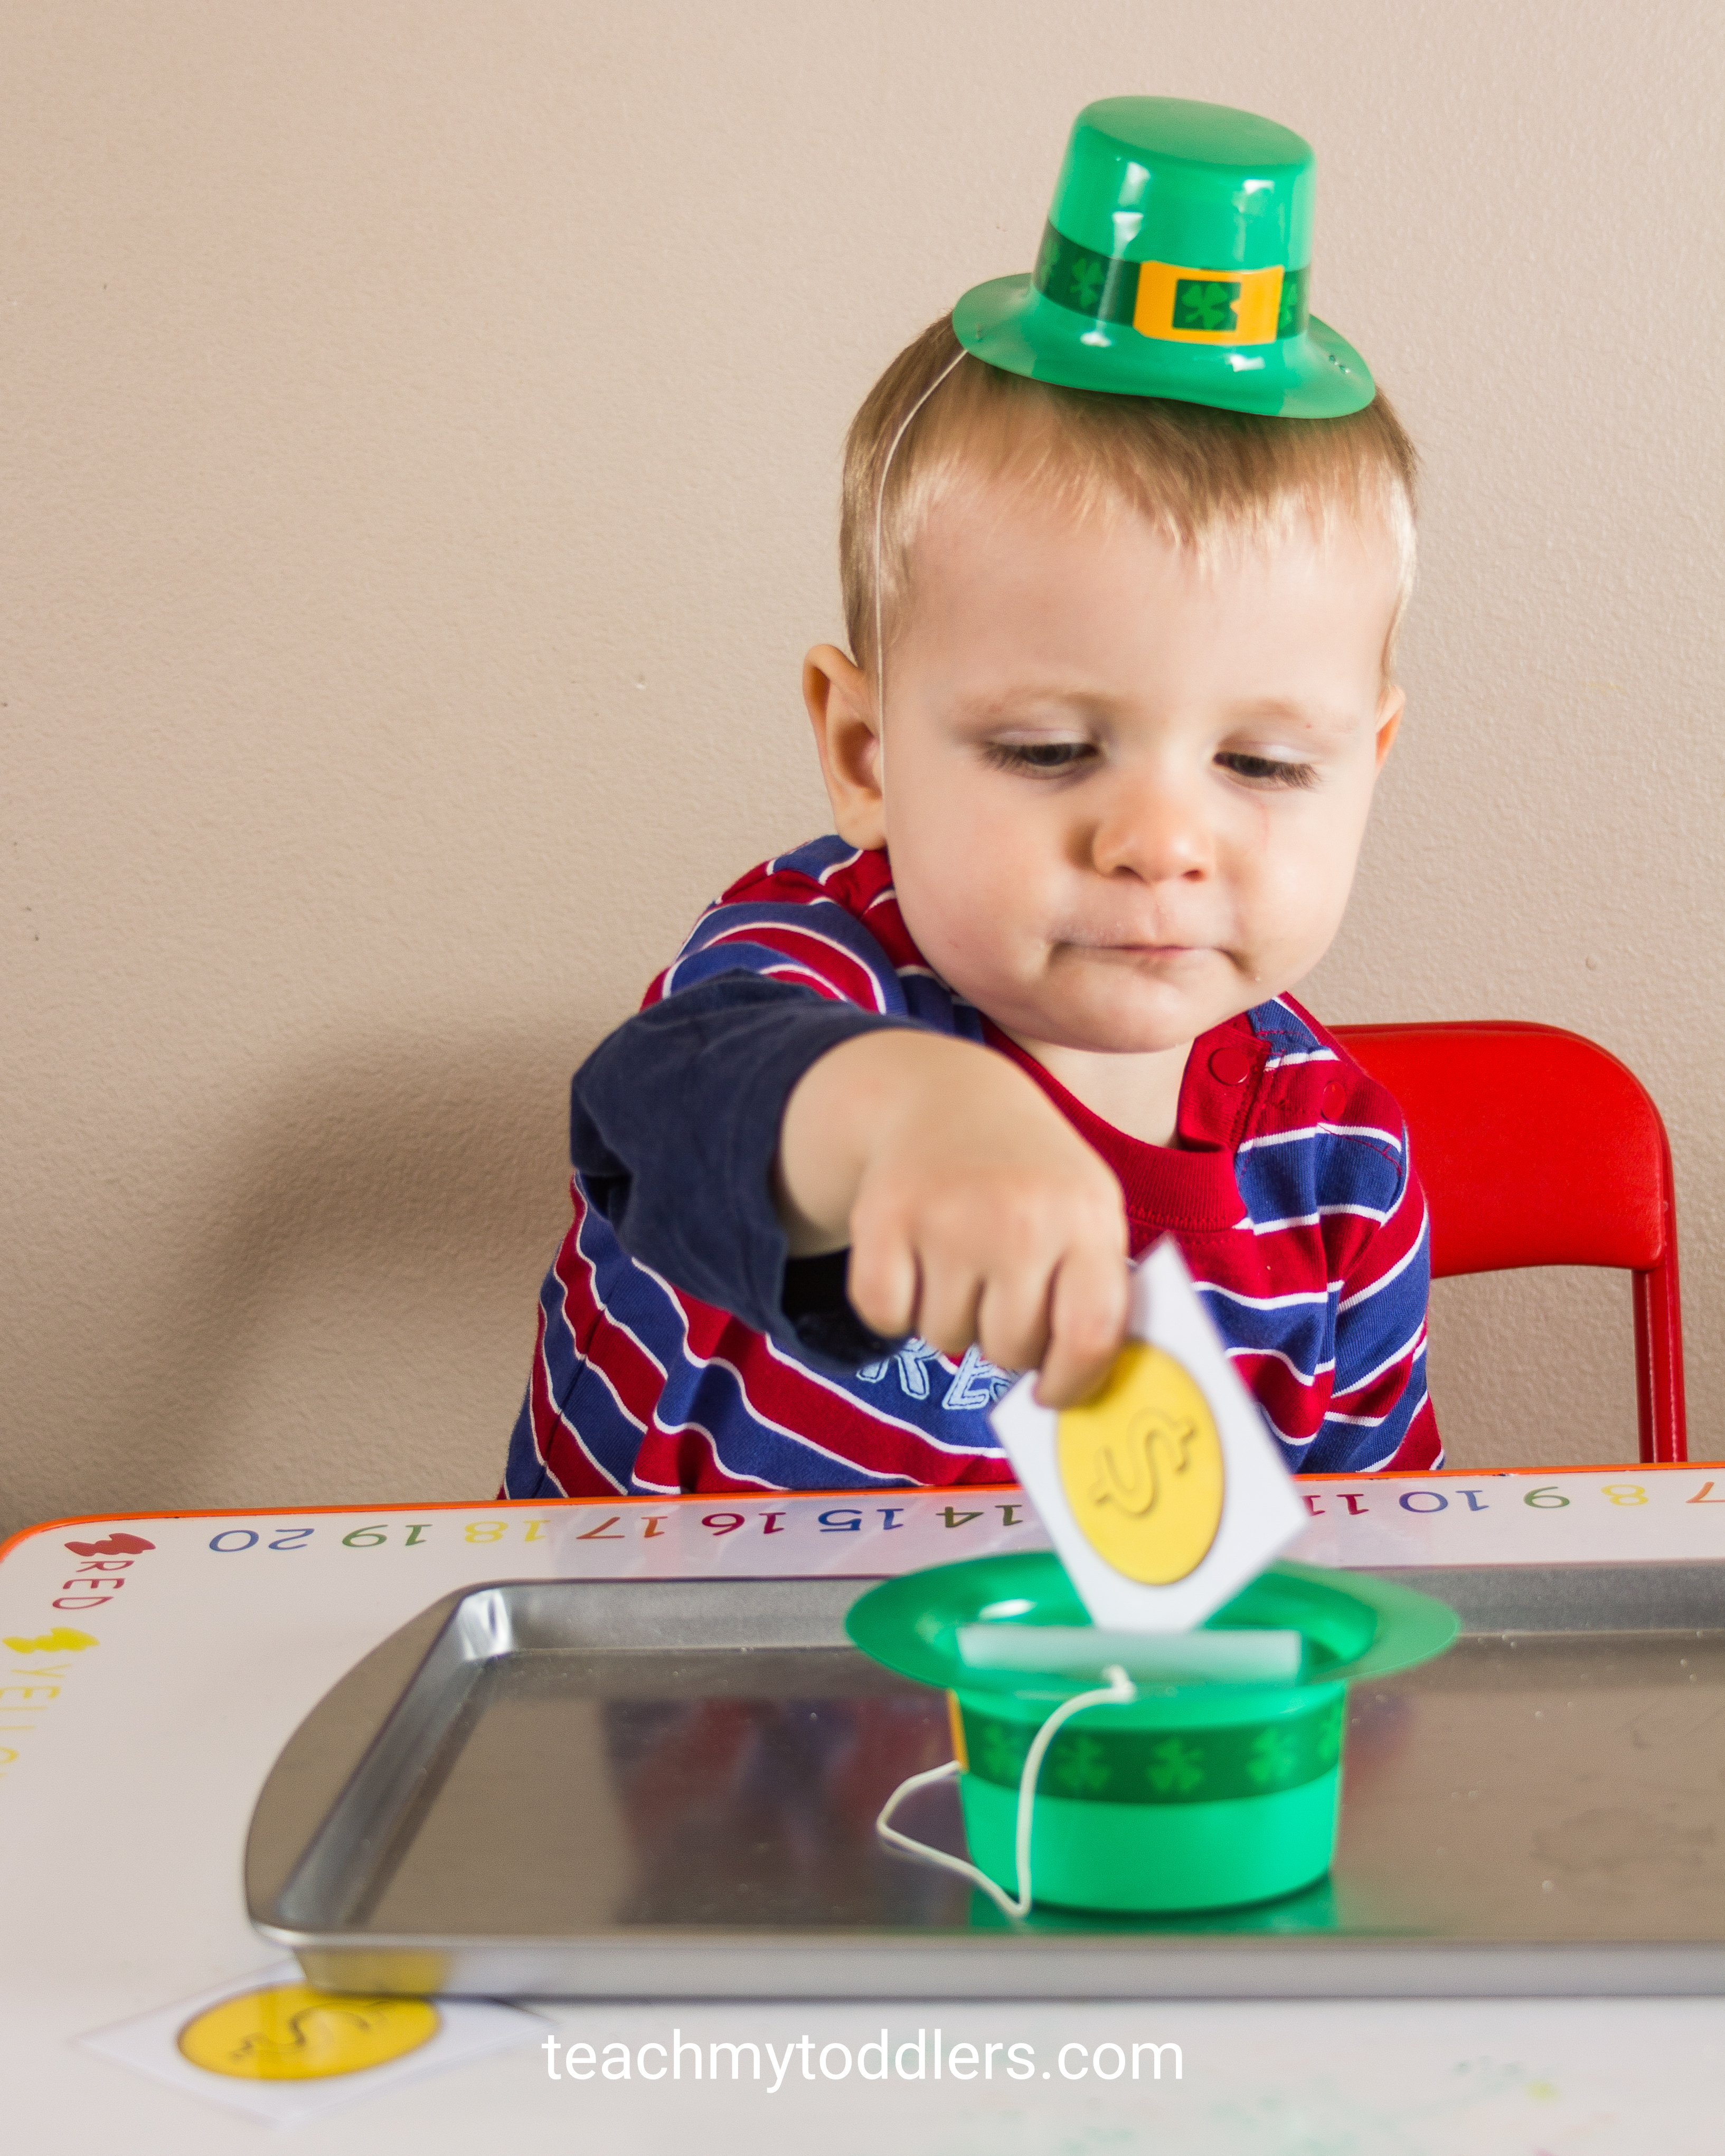 Use these great St. Patrick's Day activities to teach toddlers about st. patrick's day